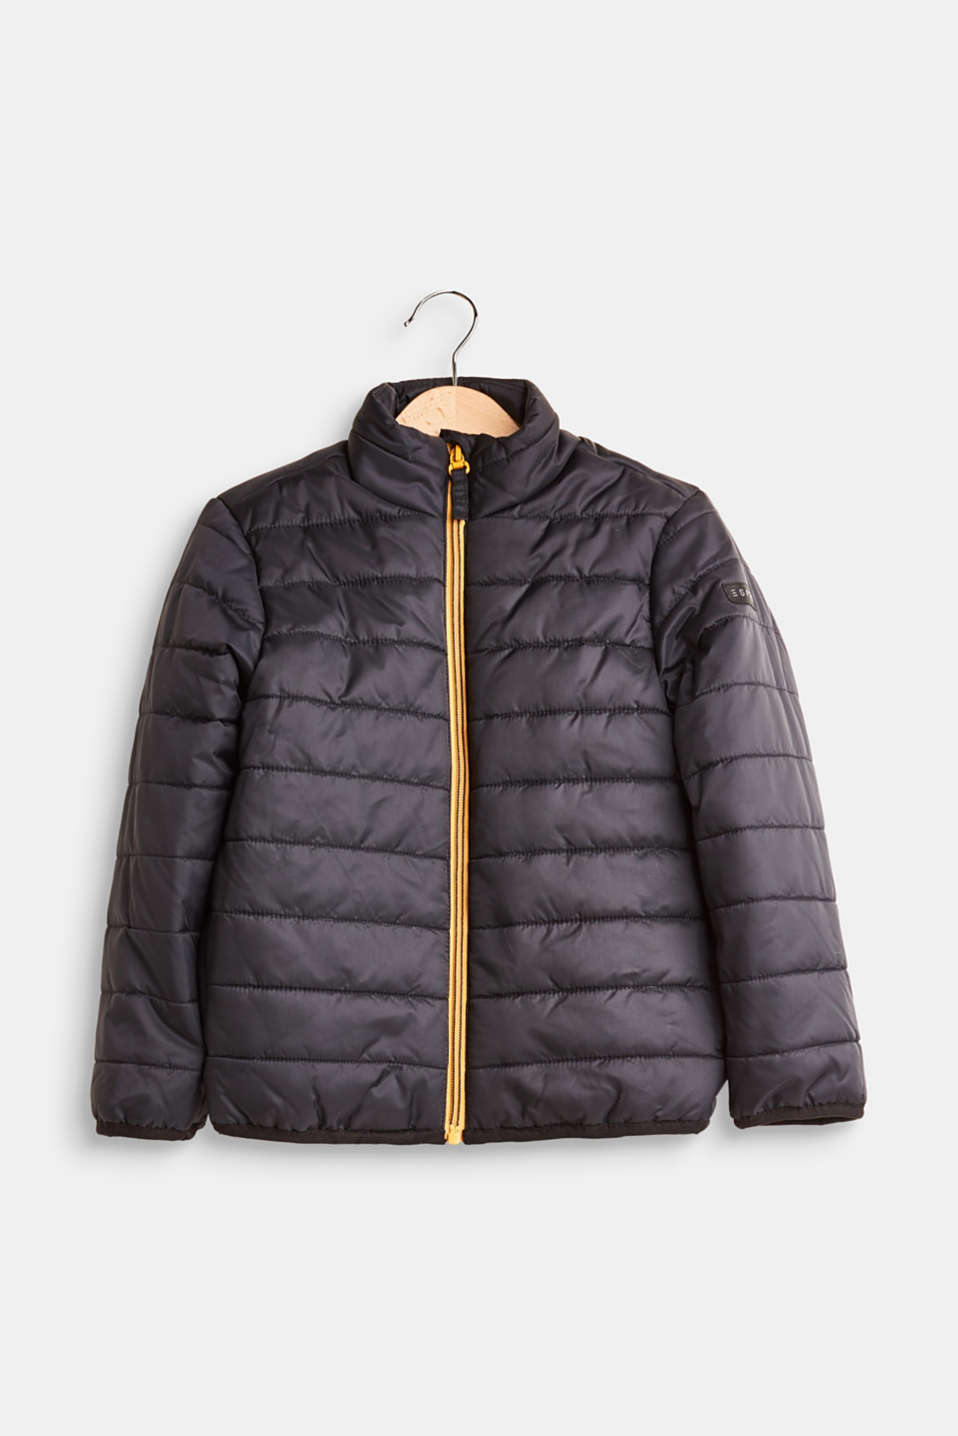 Esprit - Padded, quilted jacket with a stand-up collar